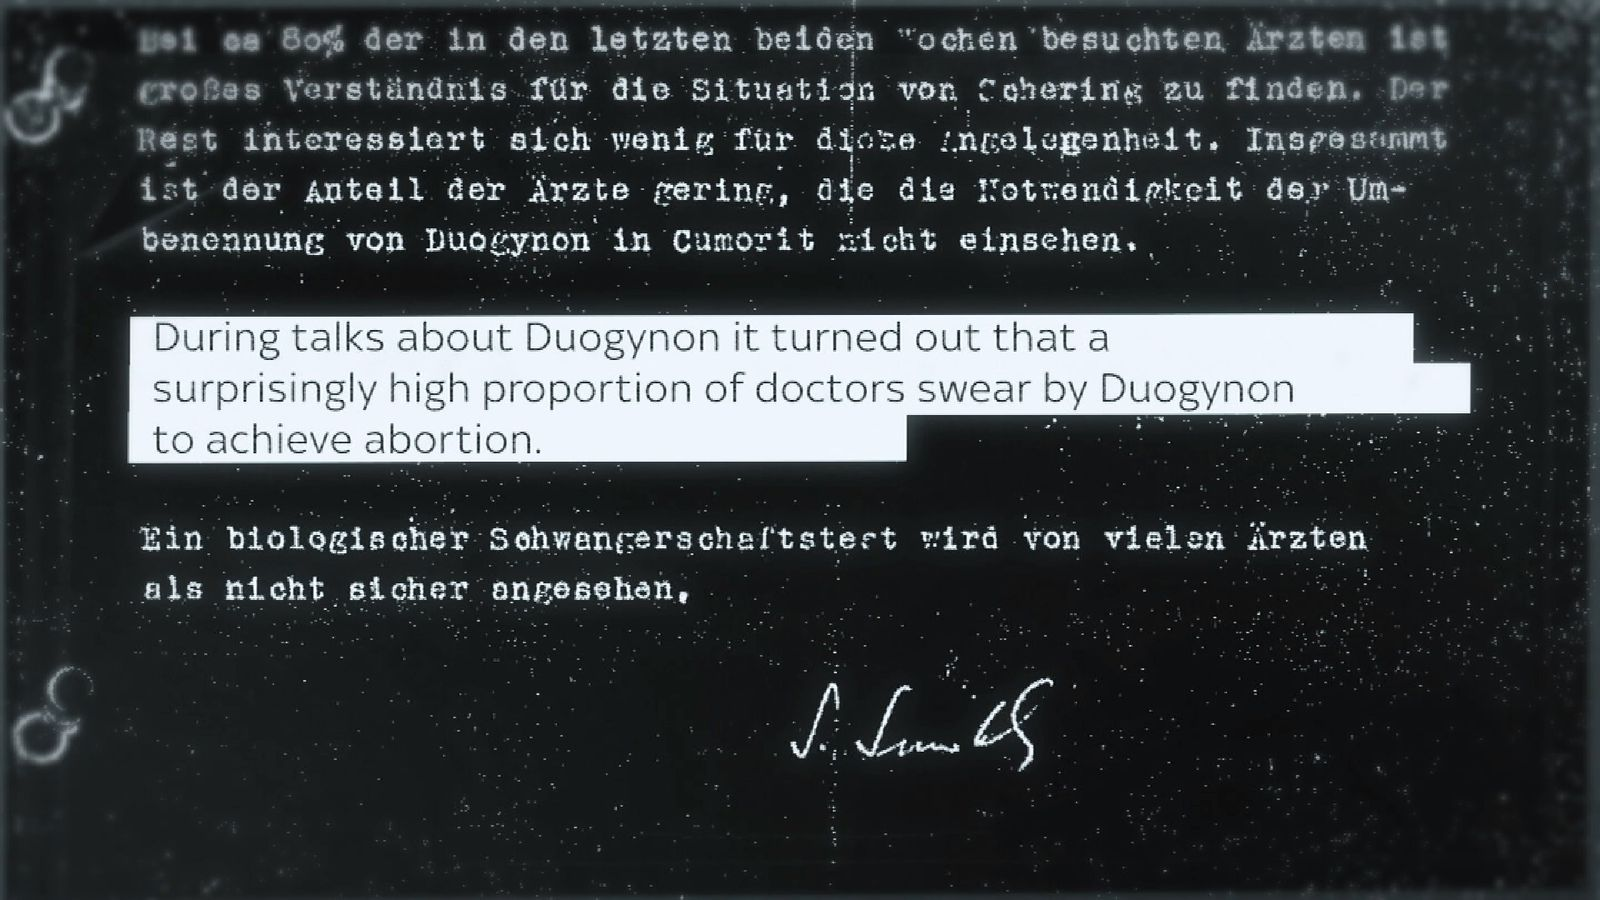 Translated documents show that Primodos was used by doctors in Germany for abortions